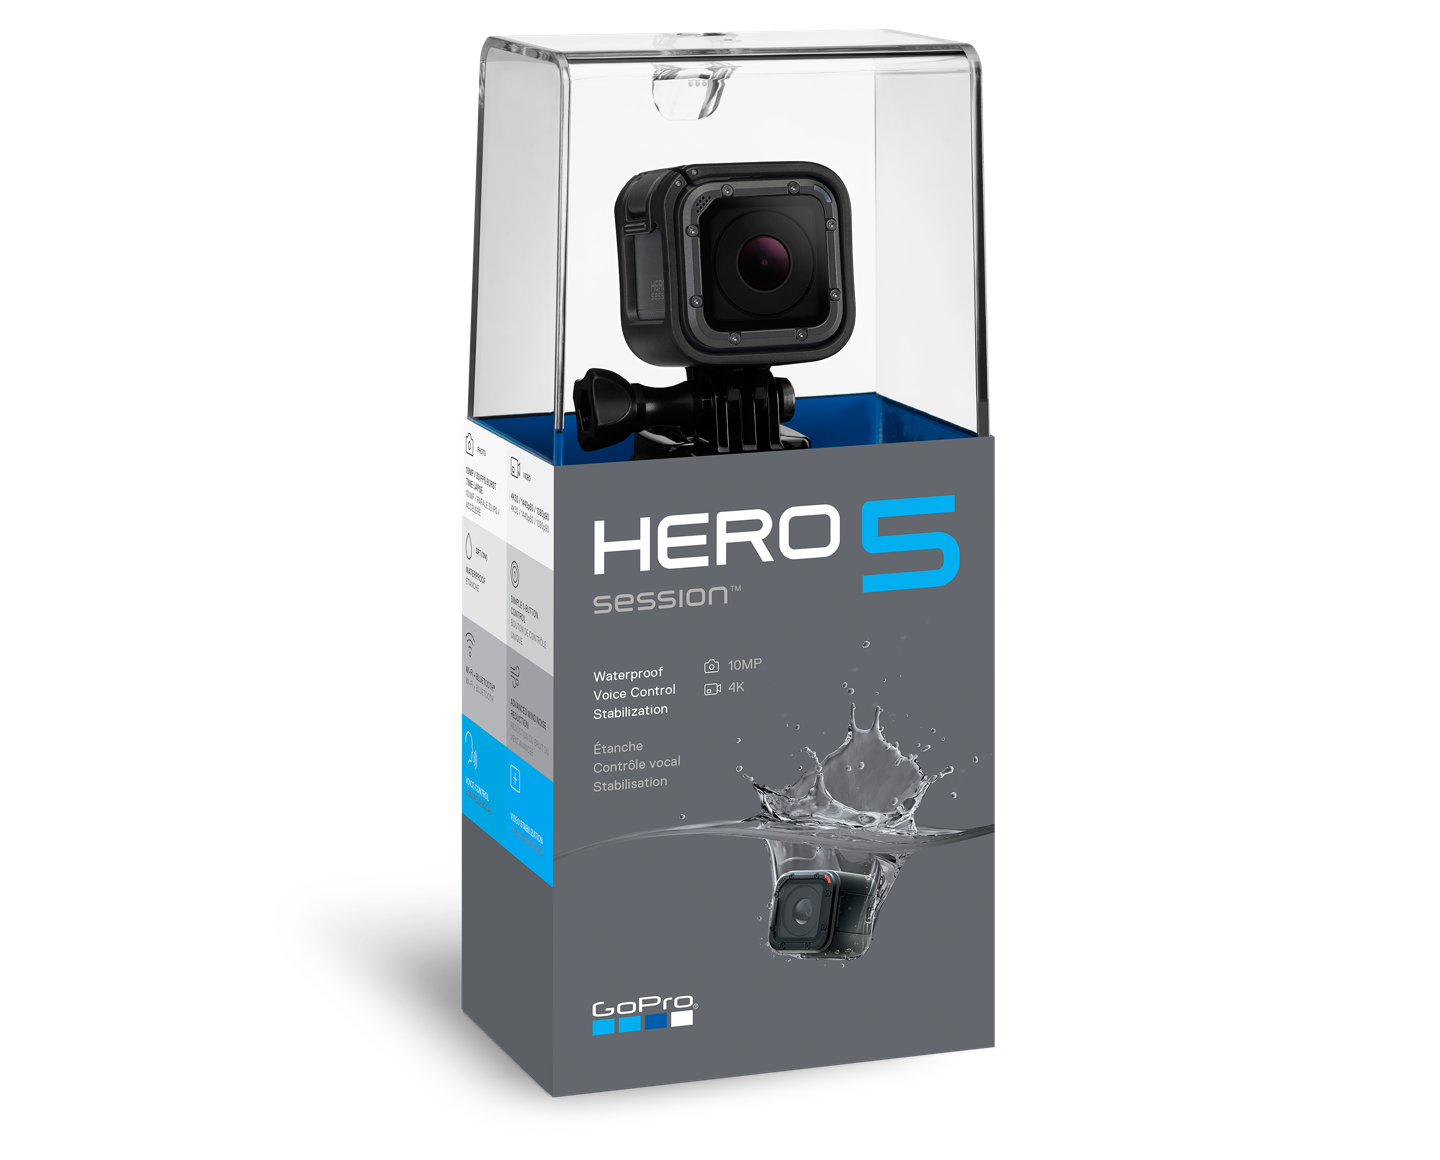 Gopro Hero5 Session Waterproof Camera Gopro Camera Action Camera Gopro Hero 5